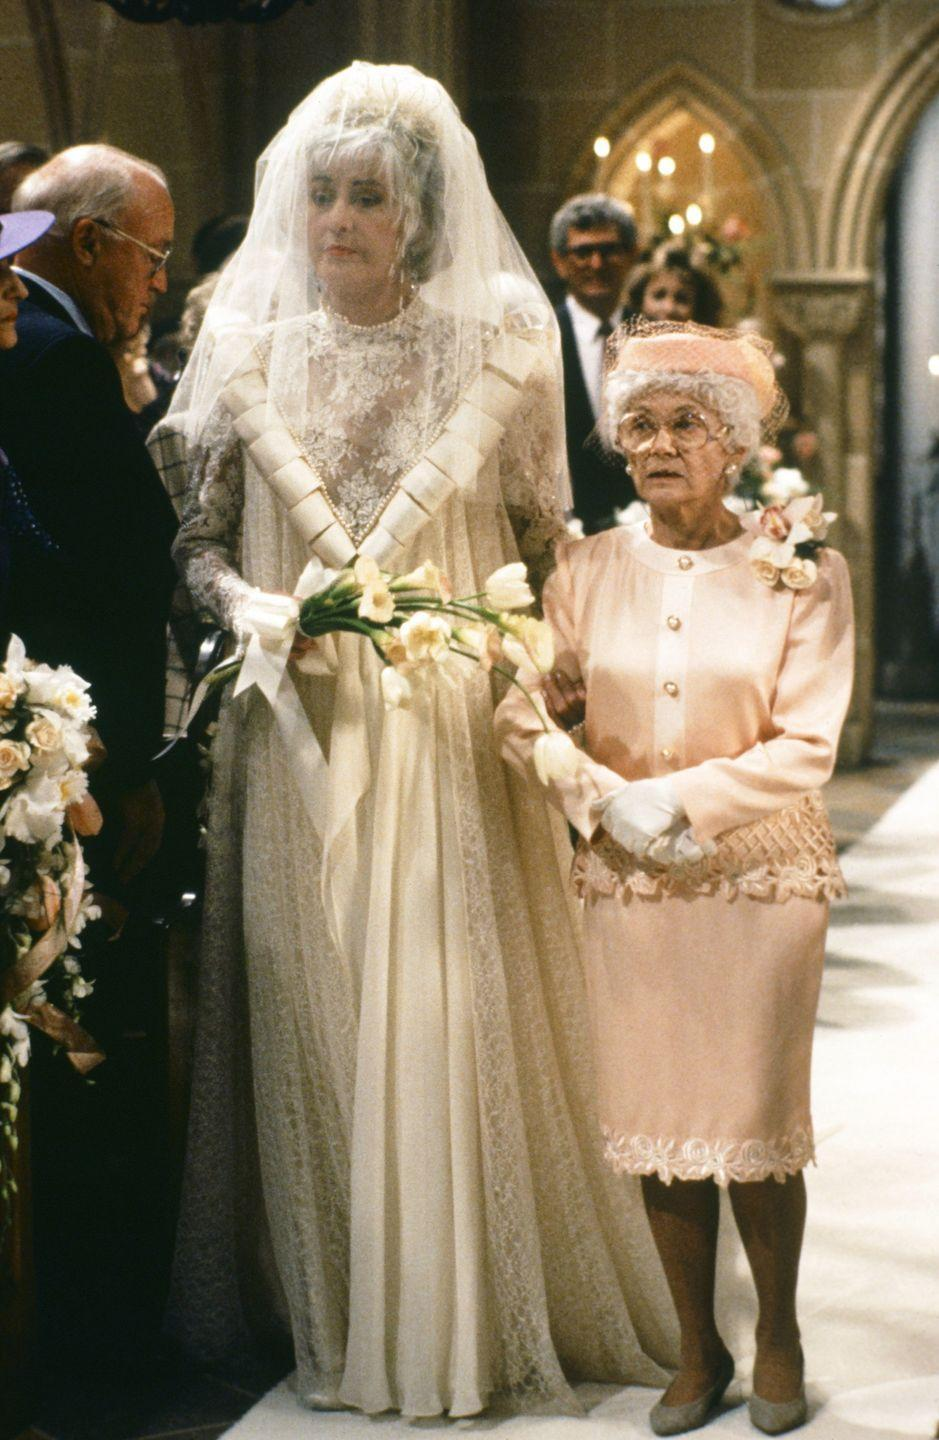 <p>When <em>Golden Girl</em>, Dorothy leaves her roommates to marry Stan the bride chose an old-fashioned look. Set with a lace illusion neck and high collar, Dorothy's dress featured panels of fabric that ran from her shoulders to waist with a skirt of lace that fell straight down. Naturally, Dorothy's sister Sophia was by her side at the vows wearing a pale pink suit and pillbox cap. </p>